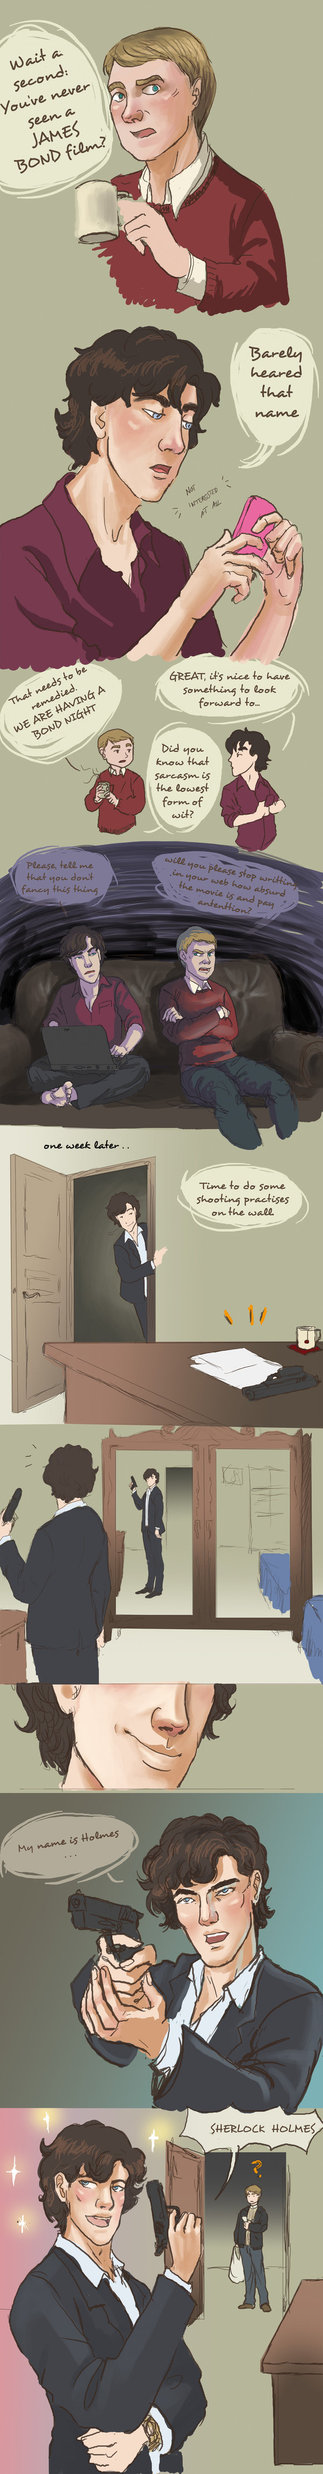 Oh the things he does when he is bored... well at least he didn't shoot the wall lol I'm Holmes.....Sherlock Holmes.....